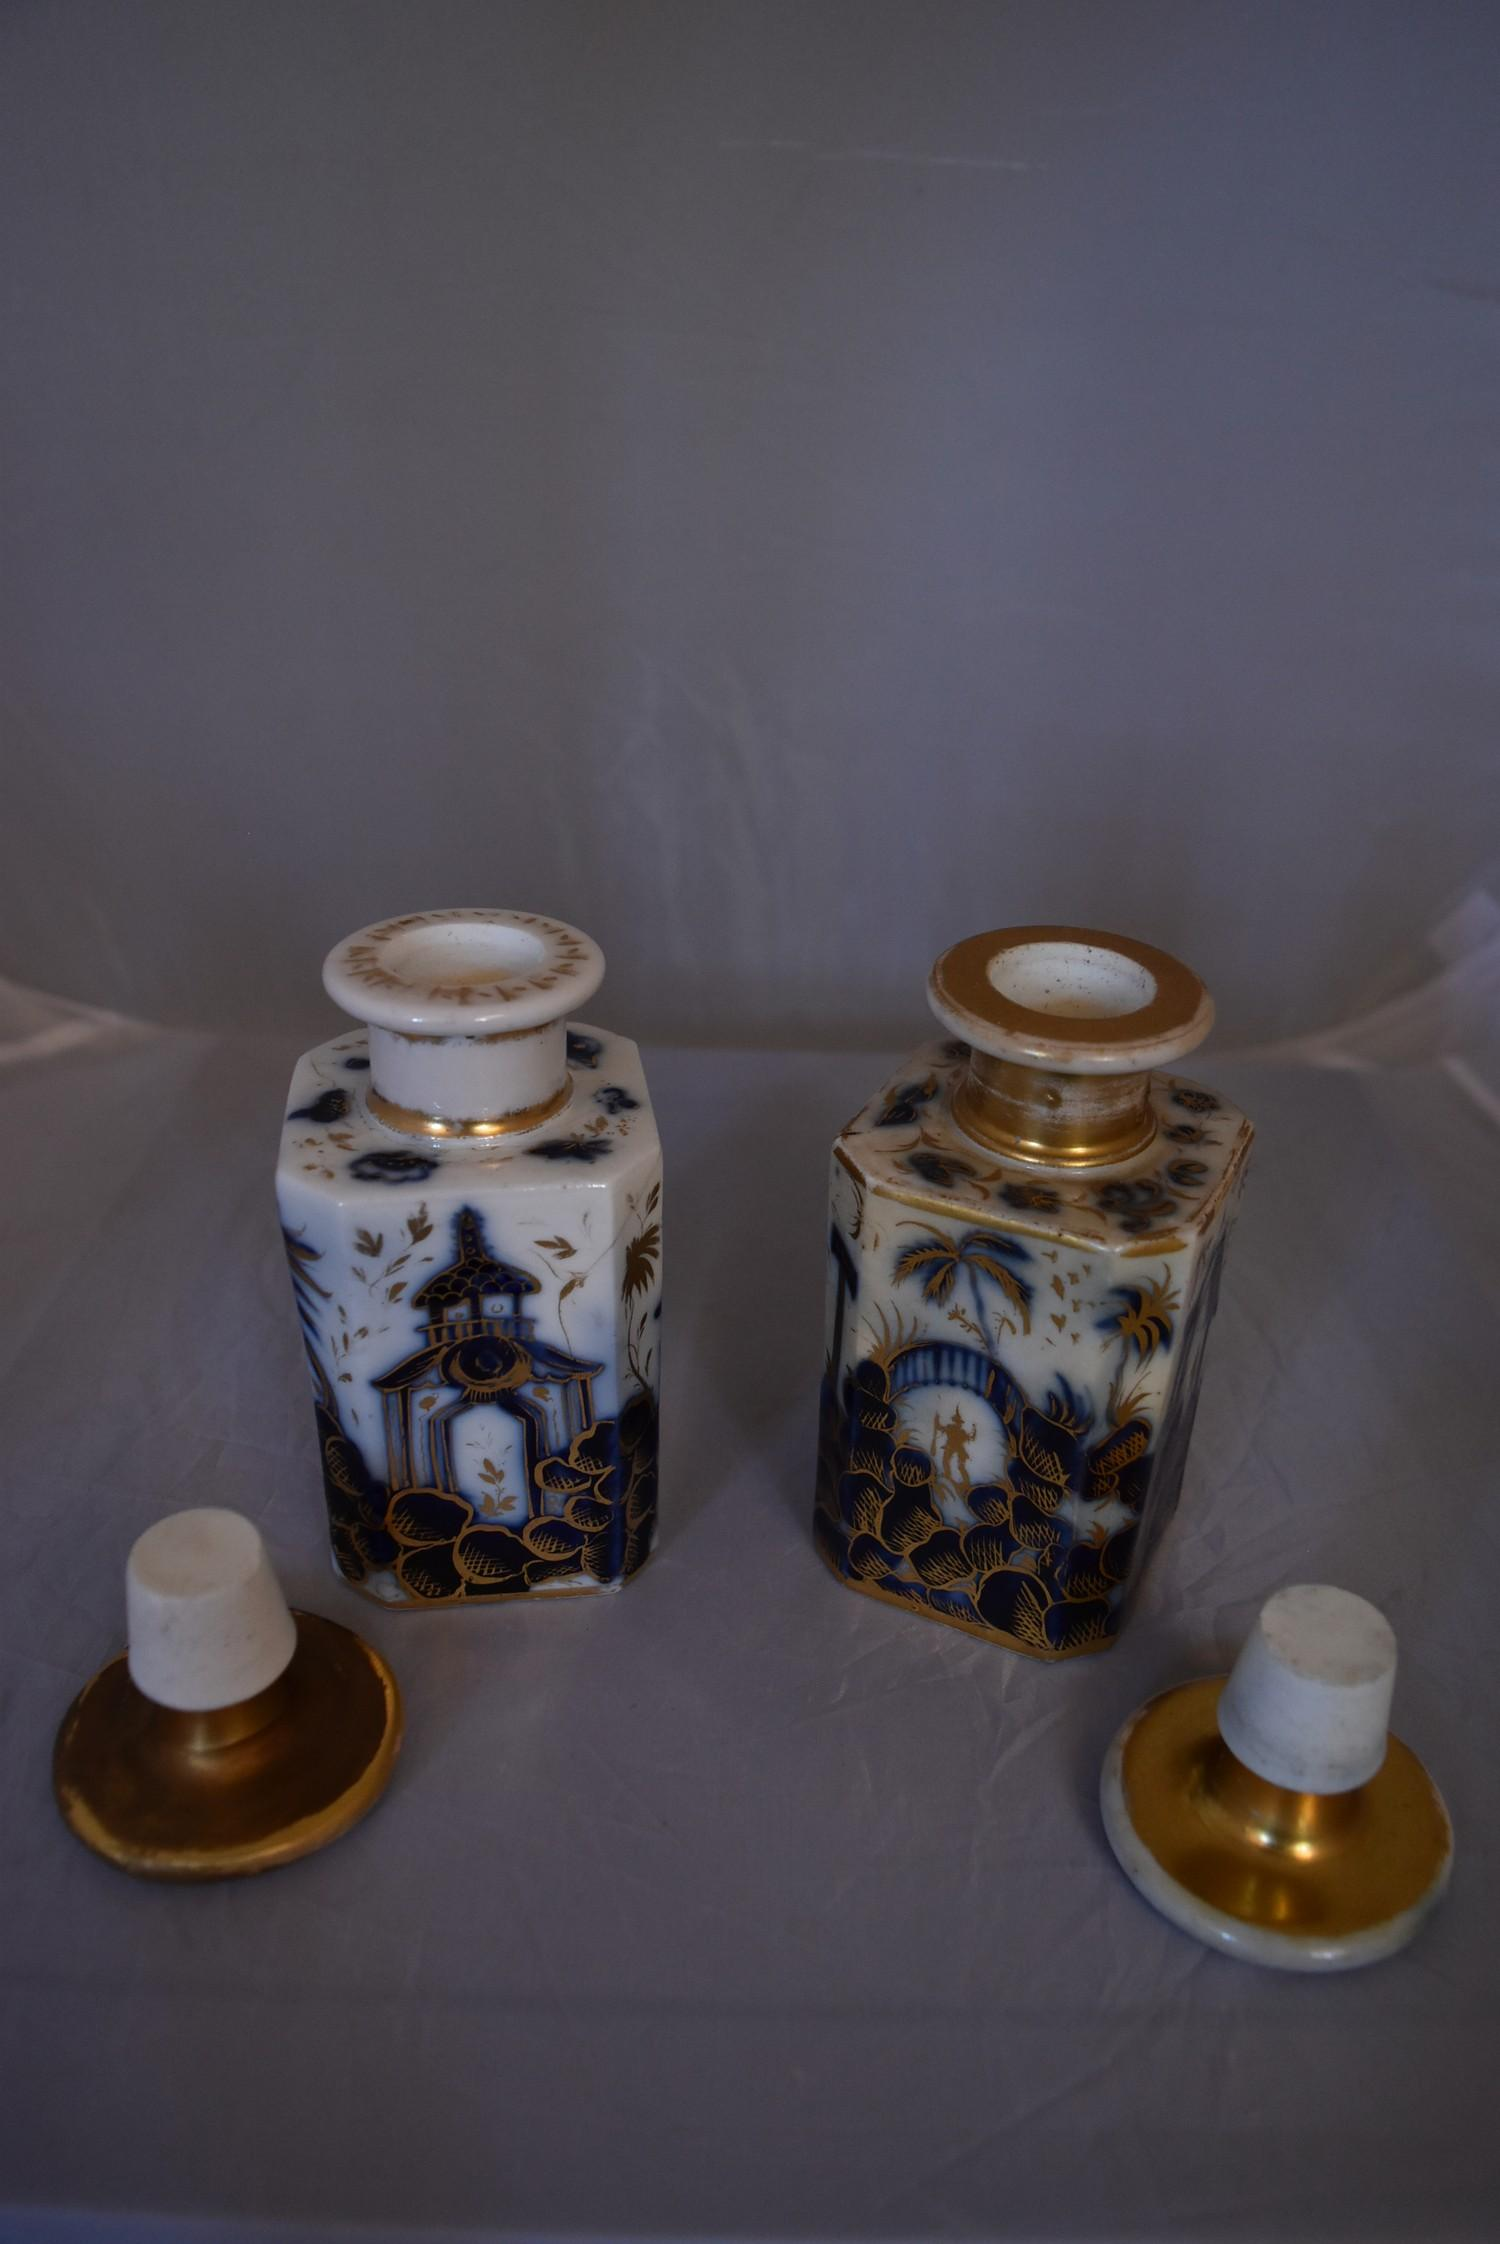 A pair of blue and white French porcelain scent bottles with oriental design and gilded accents. - Image 5 of 6